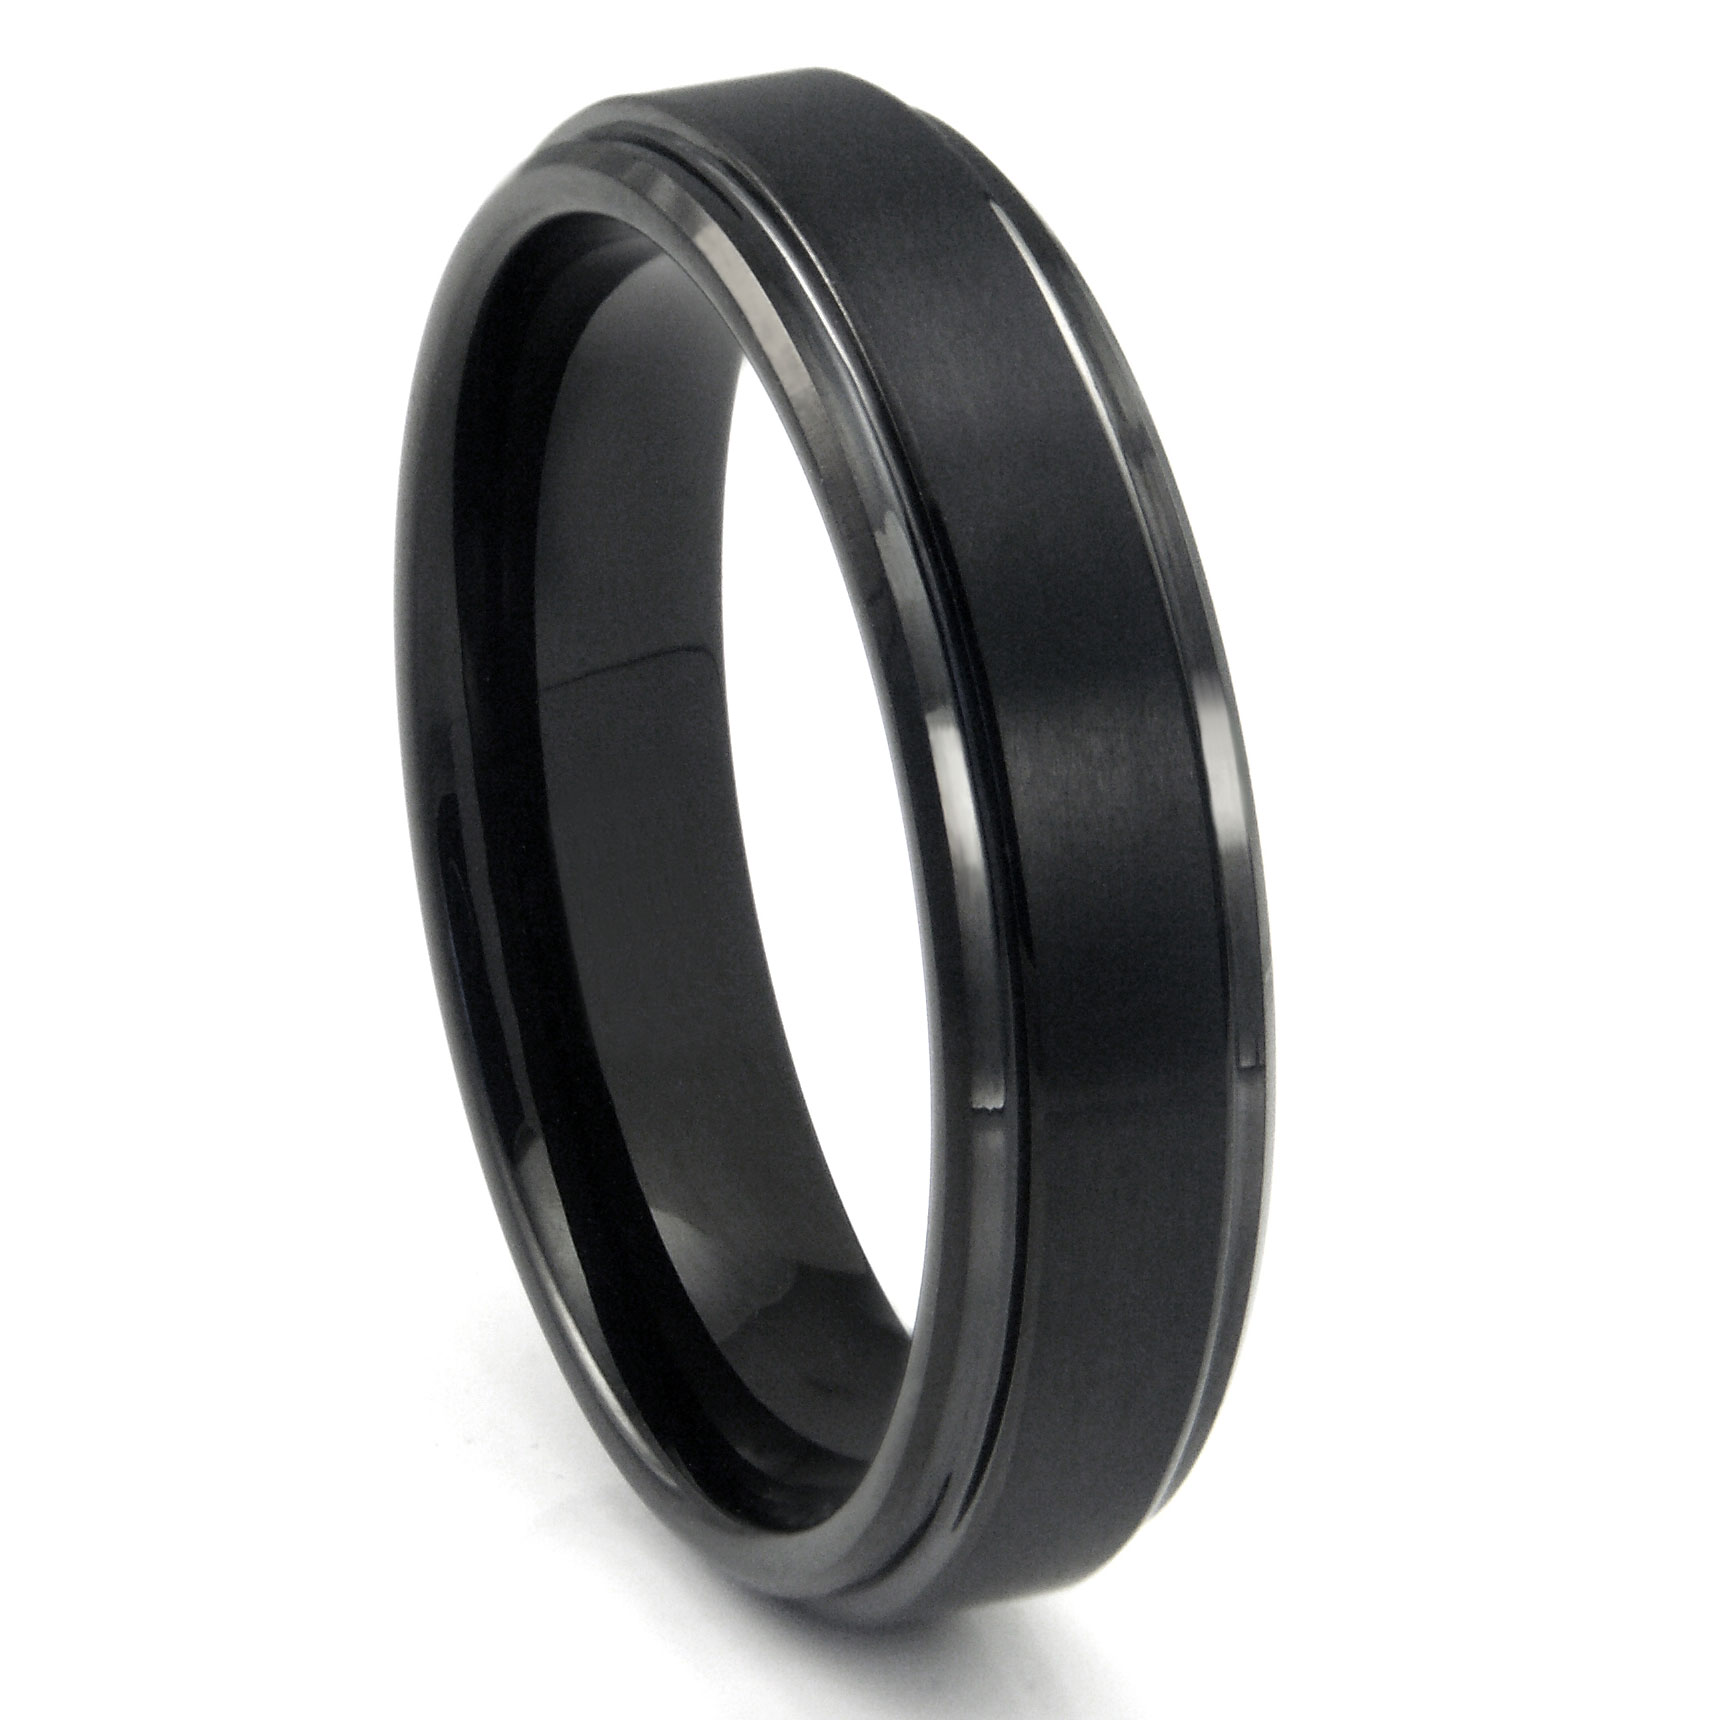 for fiber with men black coolman wedding rings logo s coolmanjeweller tungsten customized carbon ring carbide inlaied band